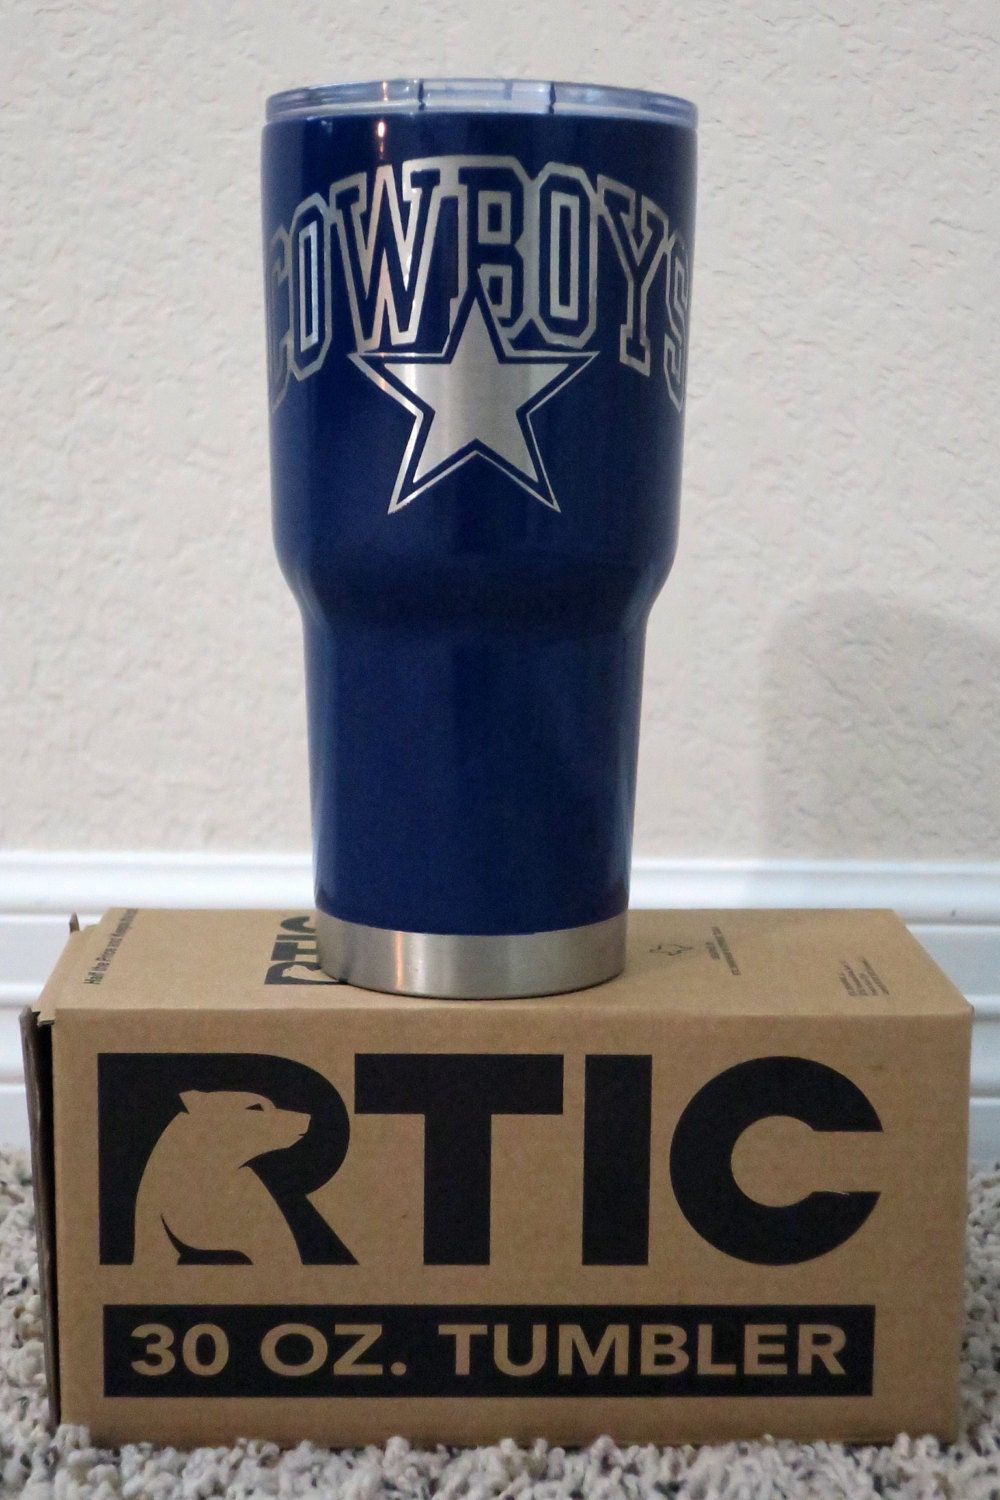 Dallas Cowboys Bathroom Decor   Dallas Cowboys Bathroom Set Pictures Dallas  Cowboys Bathroom Set Pictures A1houston